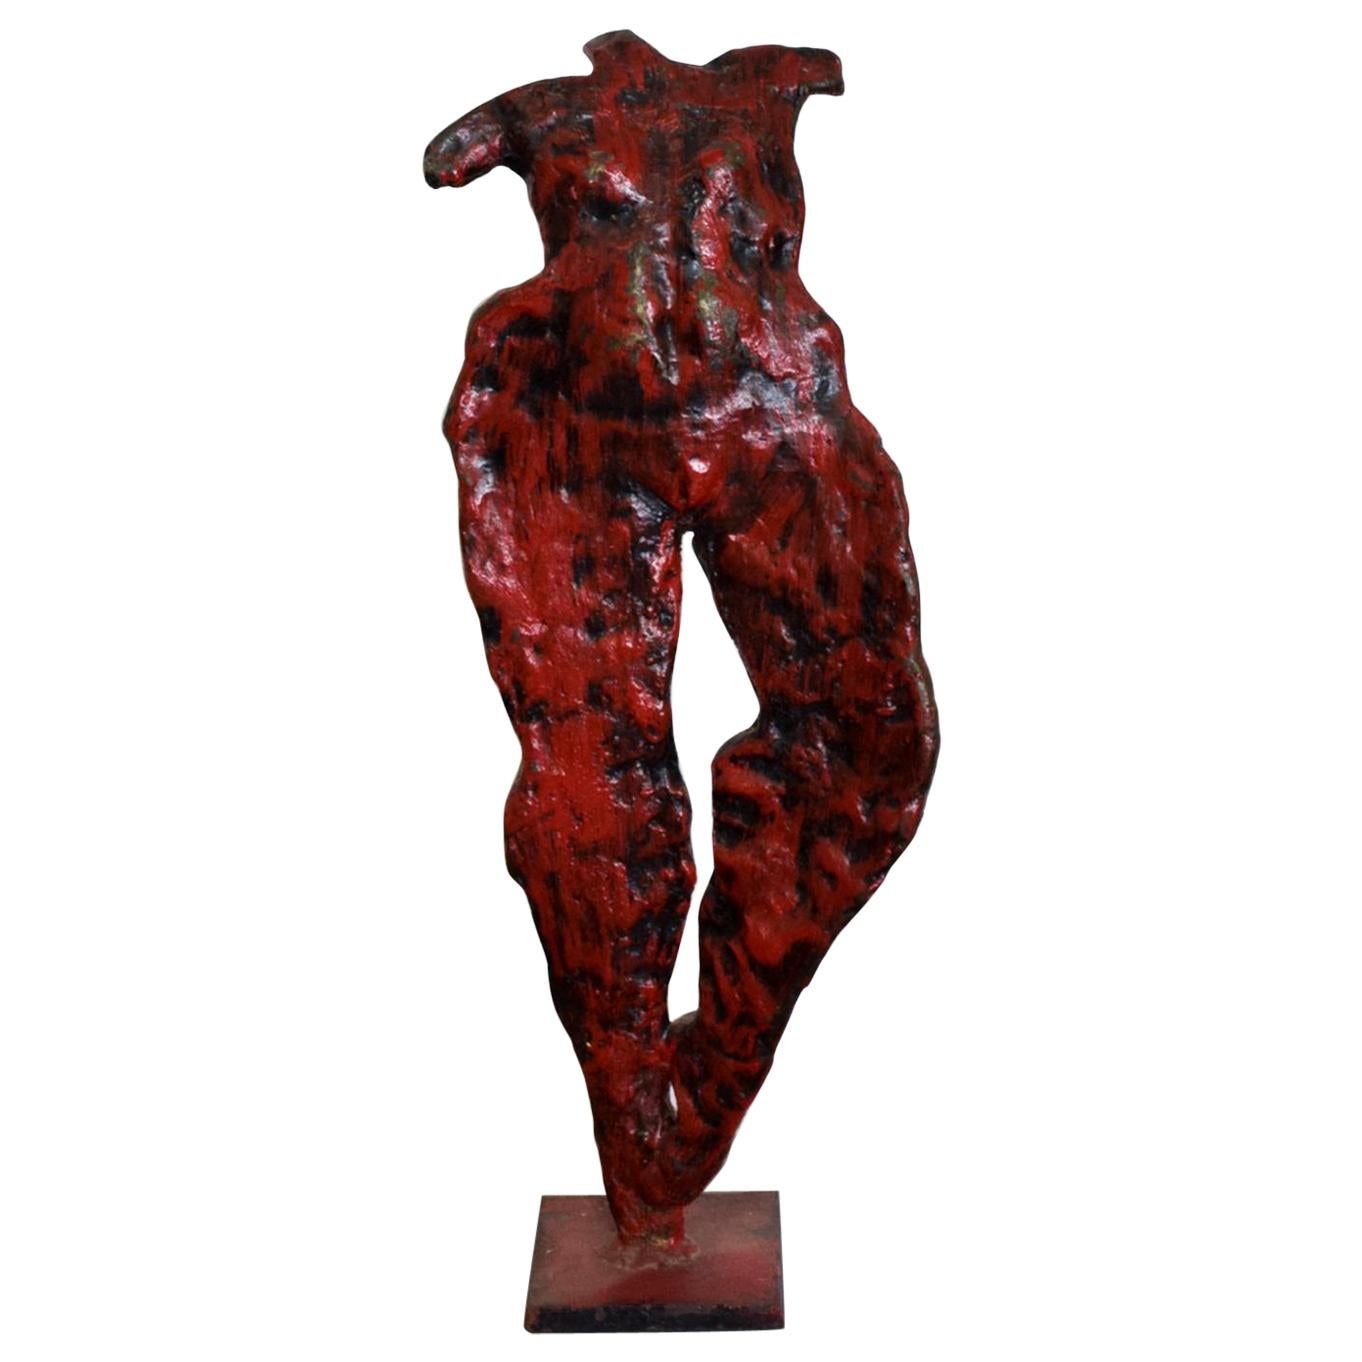 Mid-Century Modern Bronze Nude Abstract Sculpture, Giacometti Era